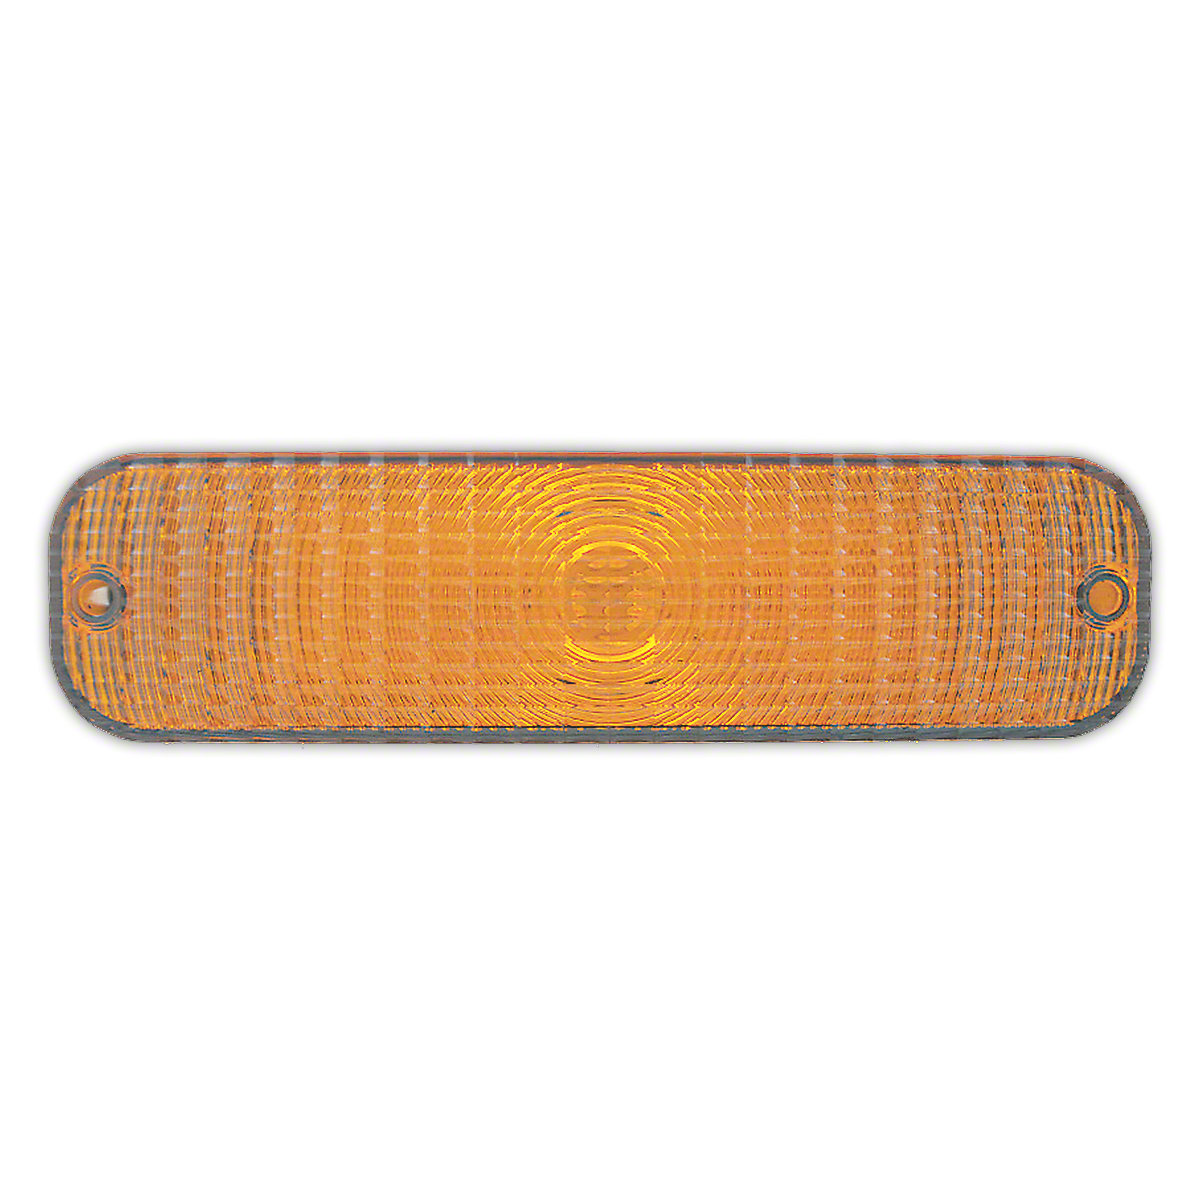 ABC4093 LED Amber Cab/Canopy Warning Light